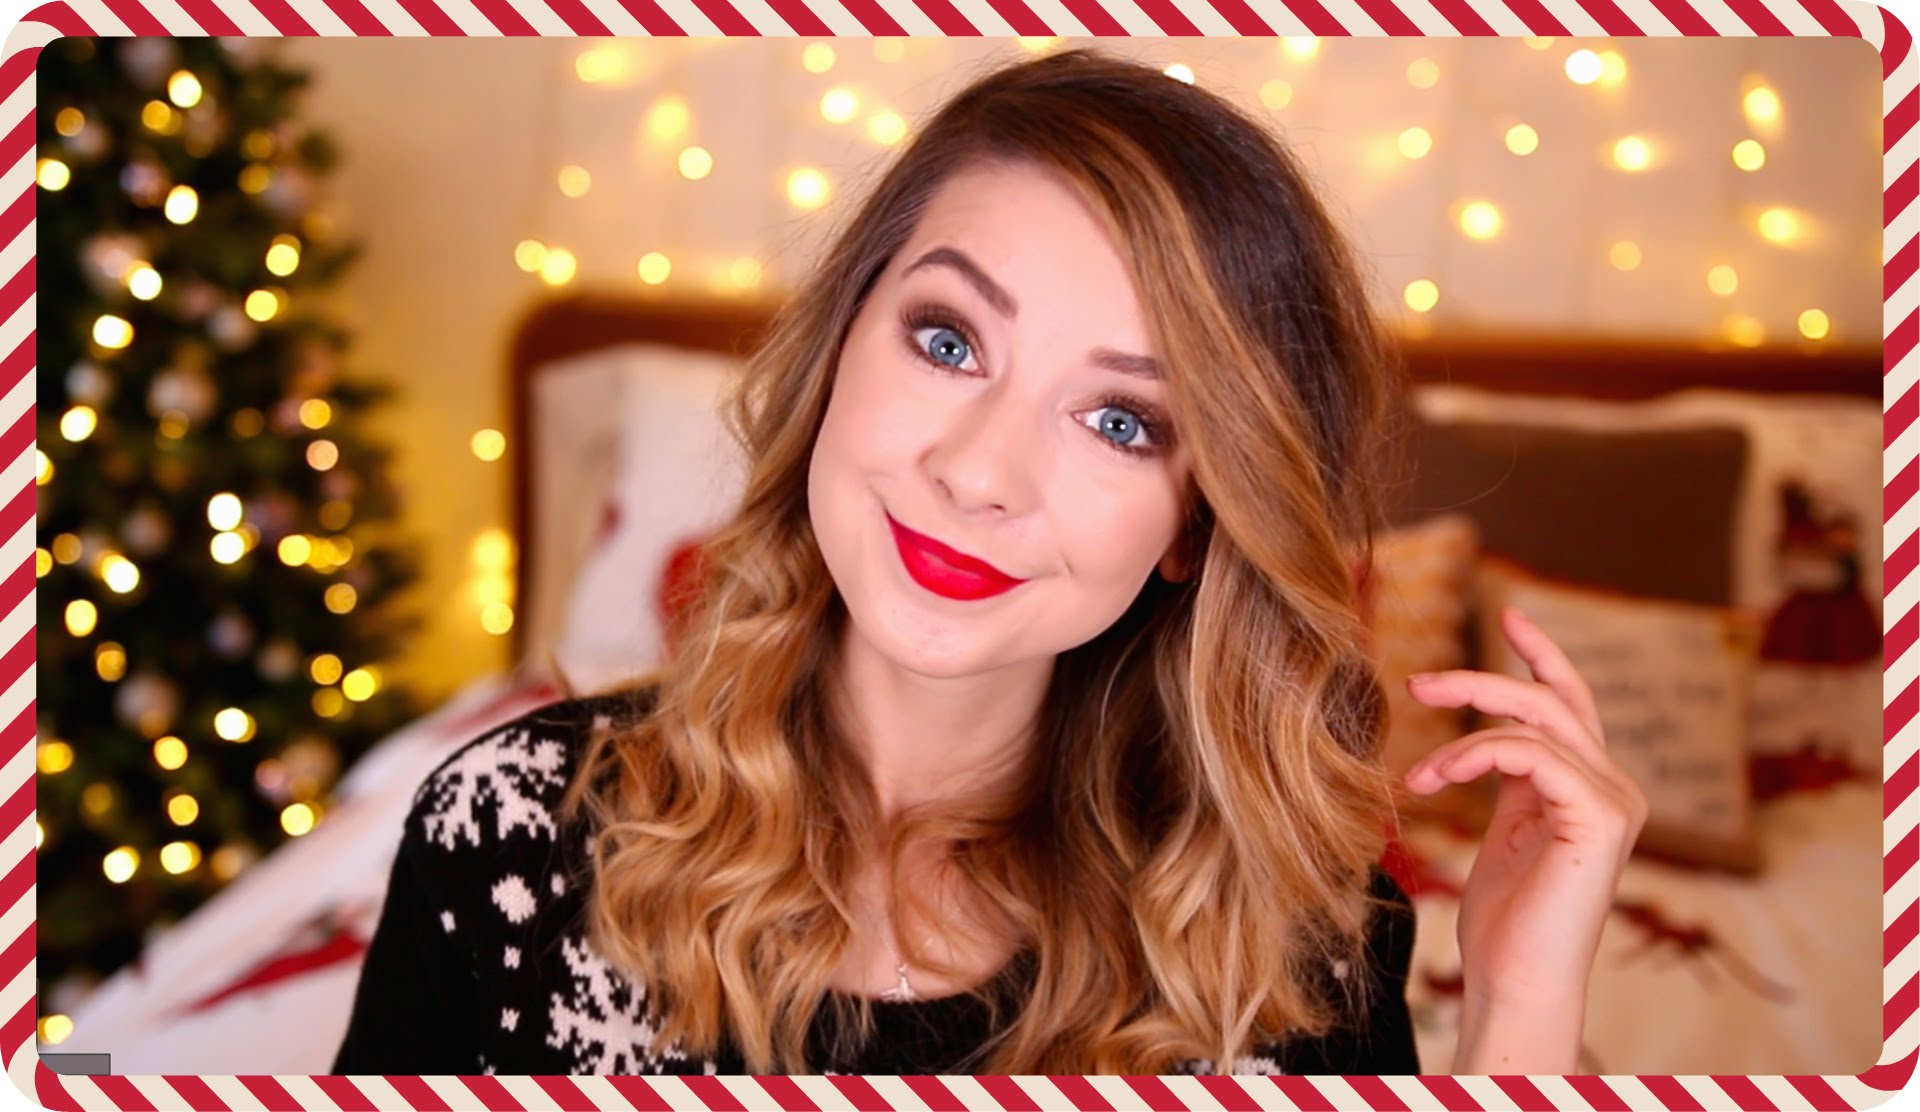 Makeup tutorials thatll inspire you holiday makeup tutorials thatll inspire you baditri Choice Image